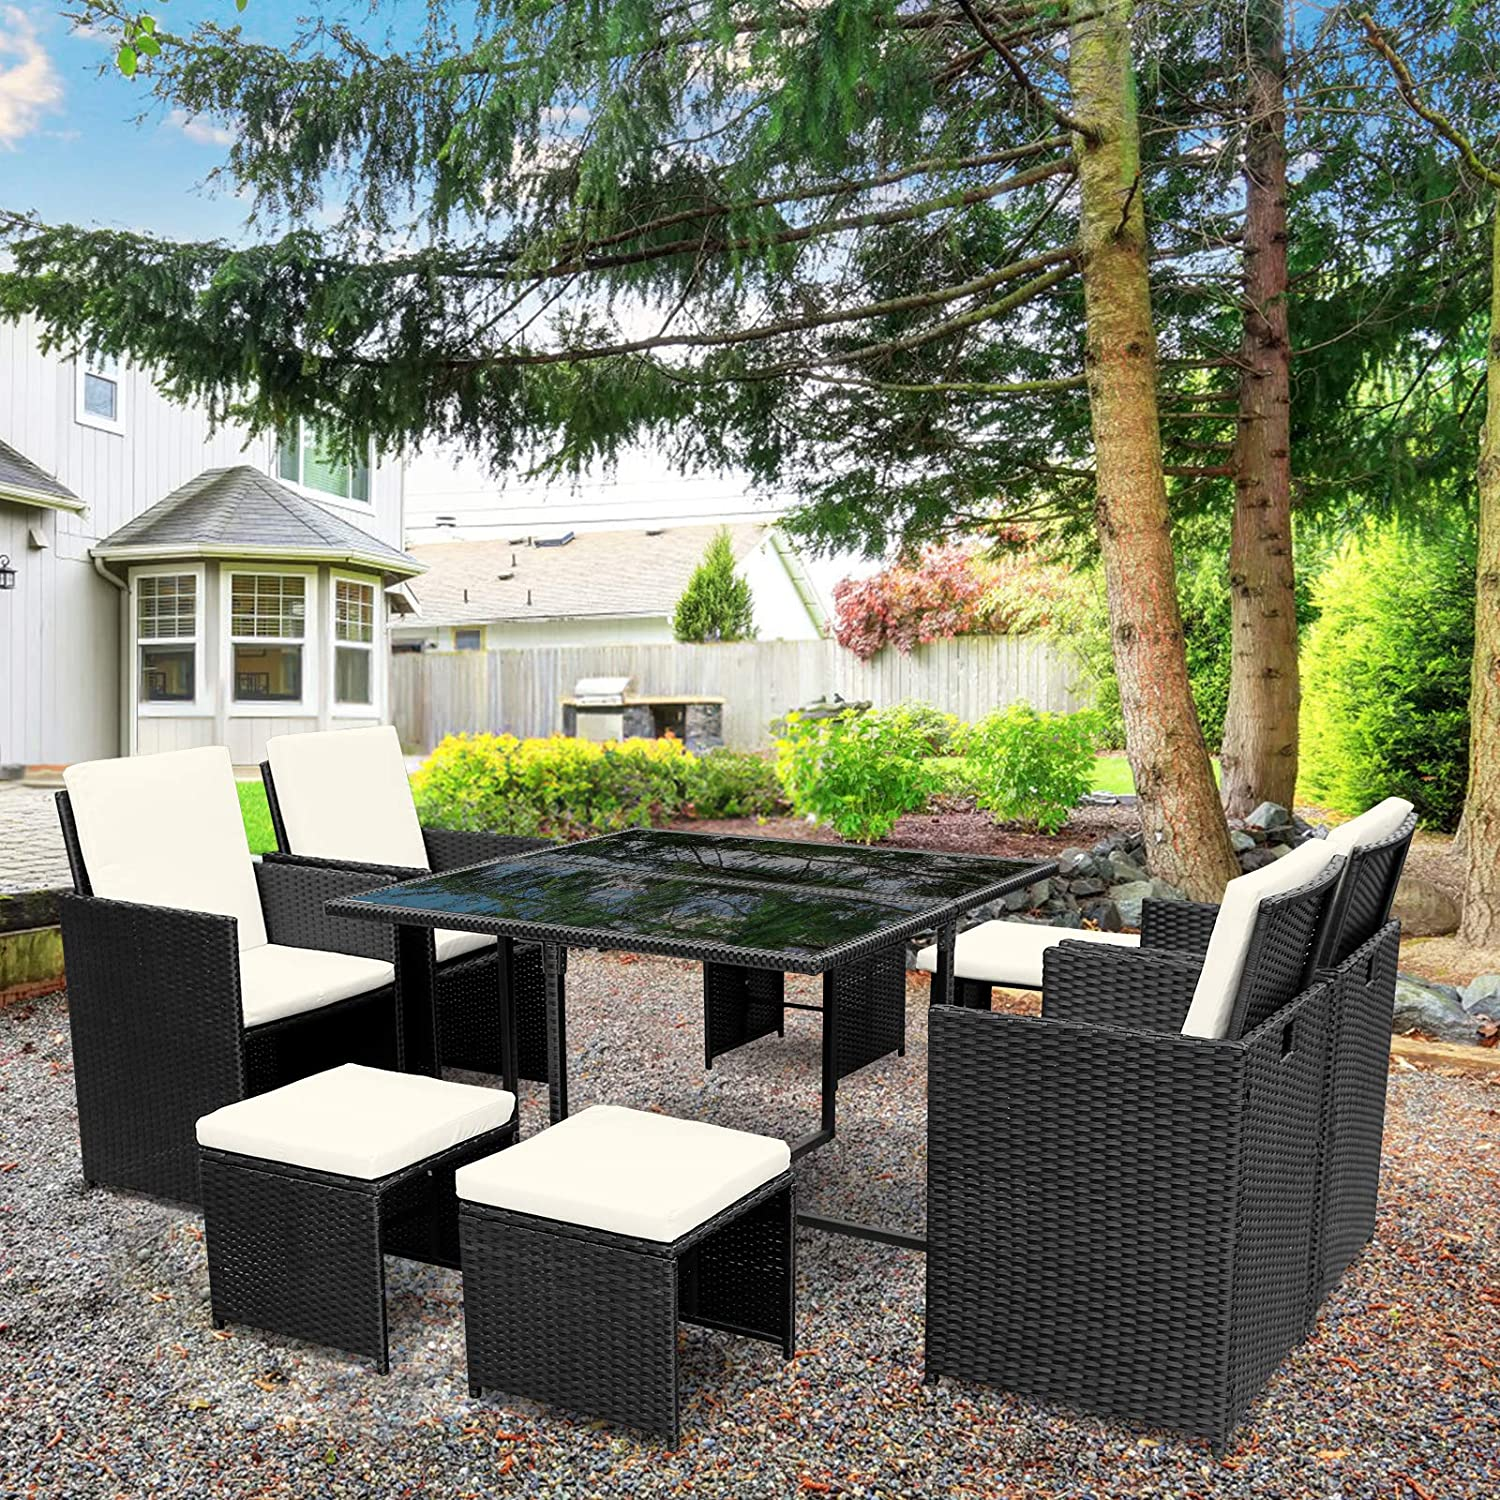 Viewee 9 Pieces Patio Dining Set | Patio Furniture | Rattan Wicker Chairs and Tempered Glass Table with Cushions | Conversation Sets | Used at Garden, Lawn, Balcony | Black